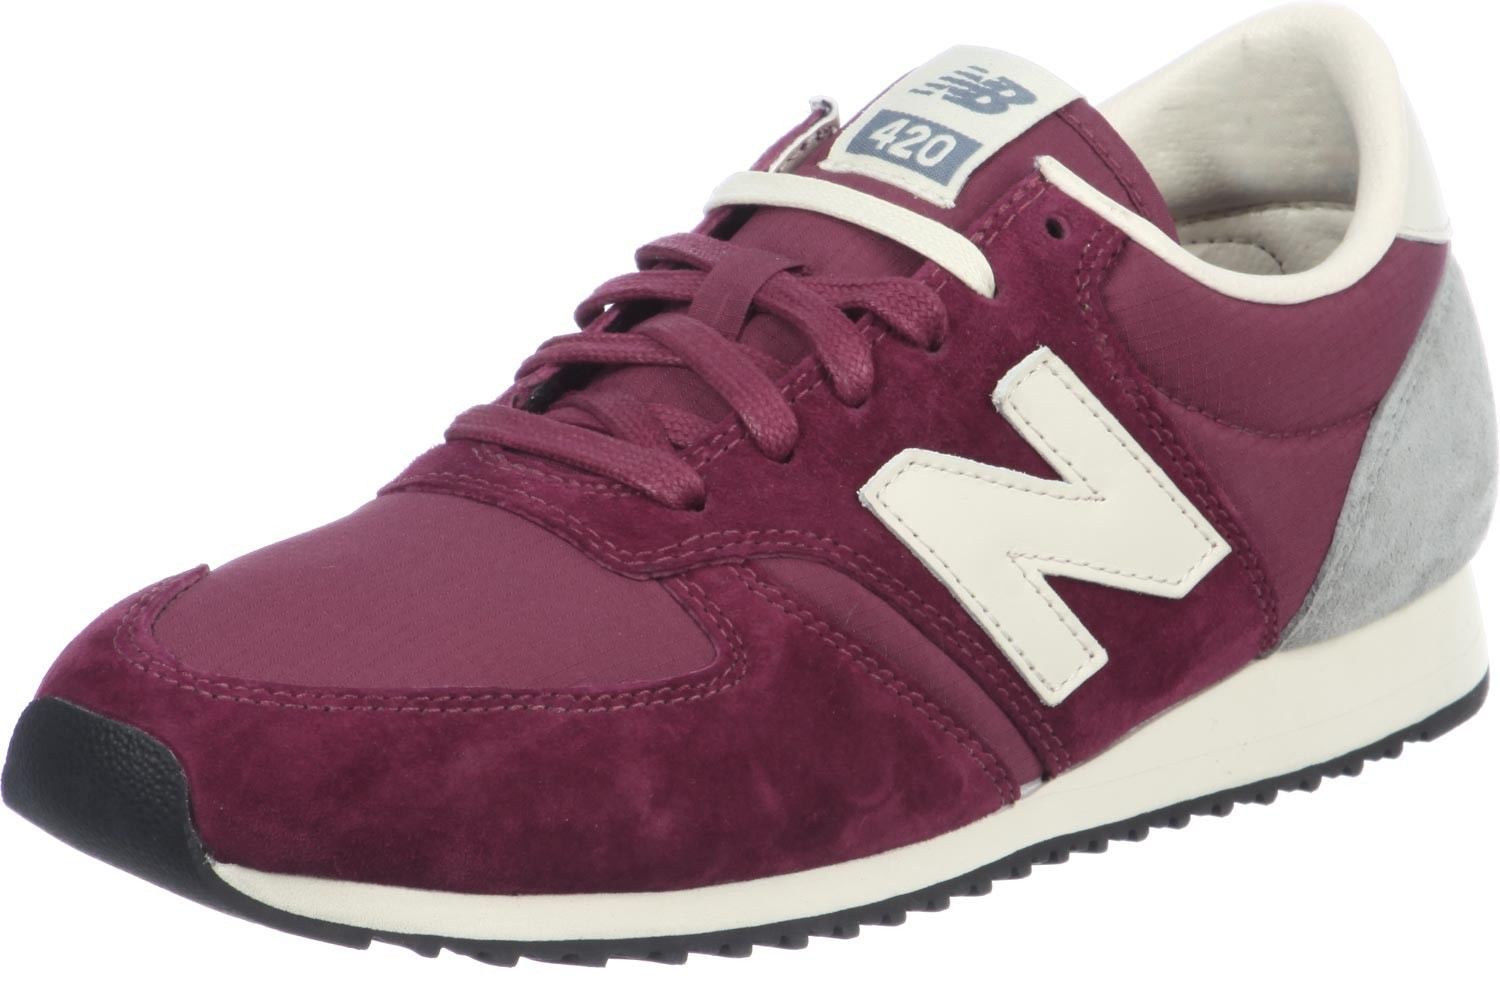 watch 63ad3 7db11 new balance bordeaux femme 420 pas cher-800xcc.jpg